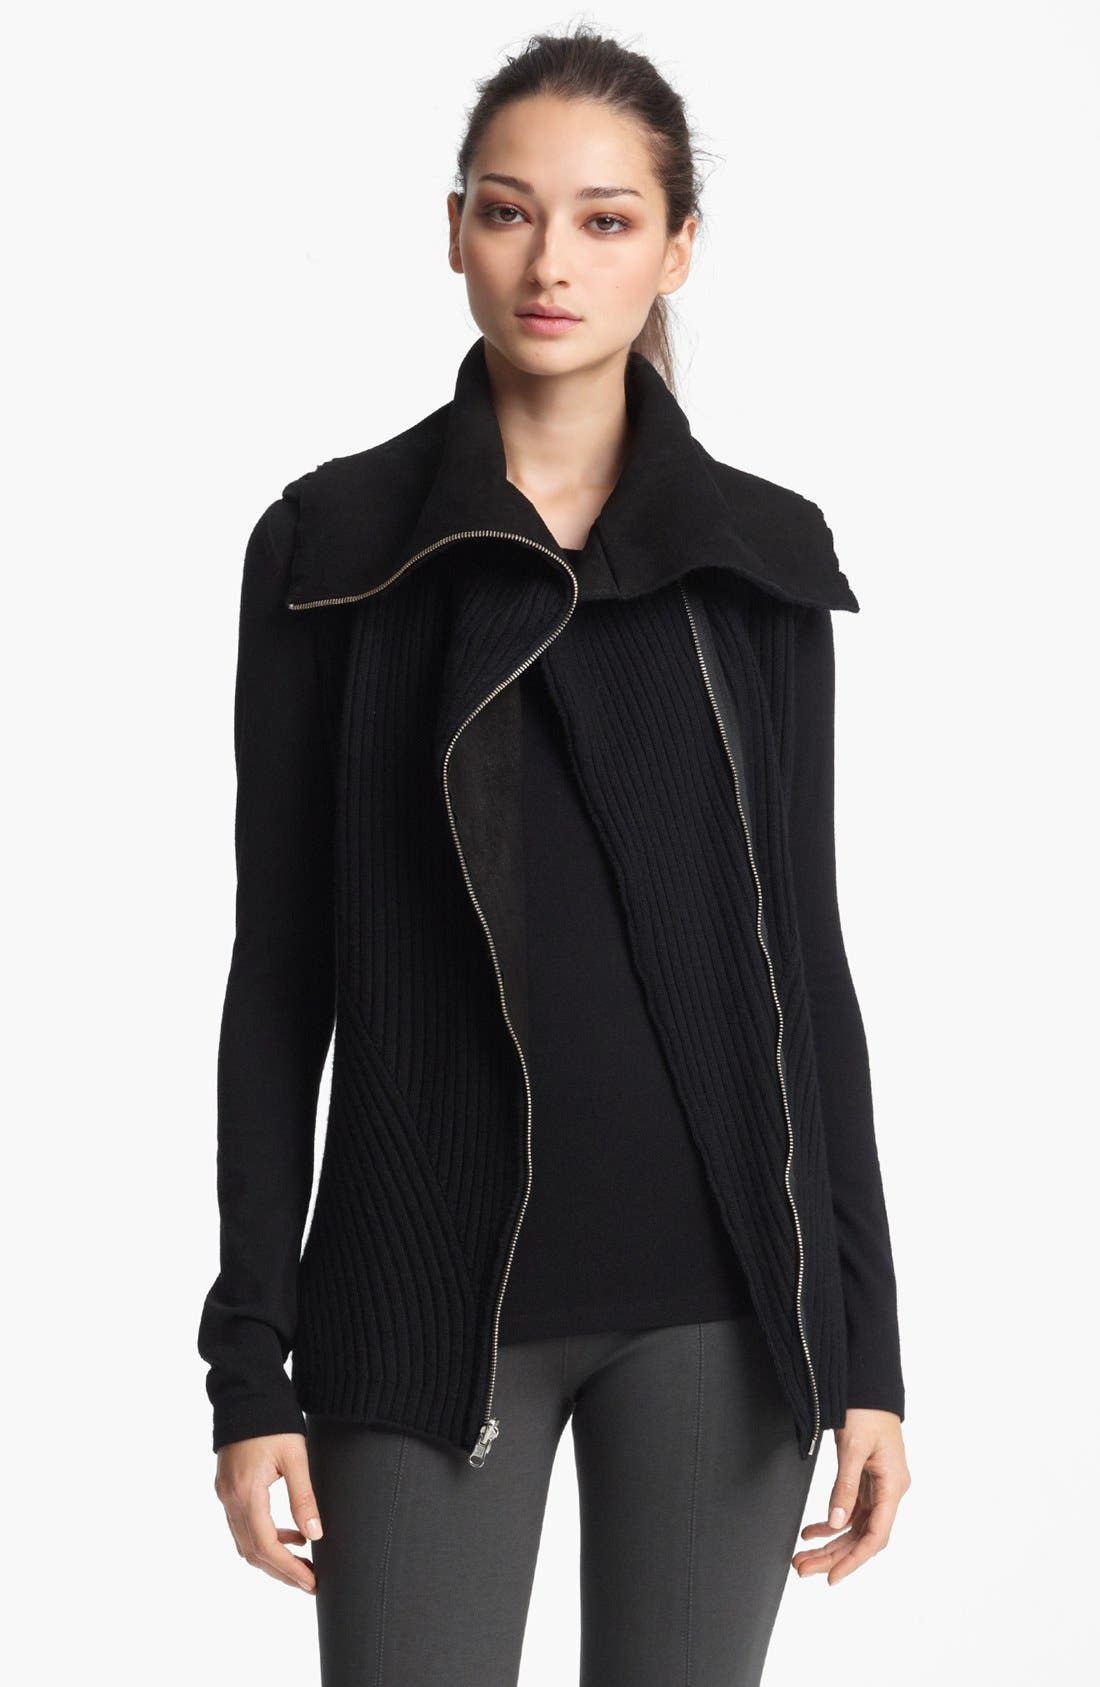 Main Image - Donna Karan Collection Wool & Cashmere Sleeveless Knit Jacket